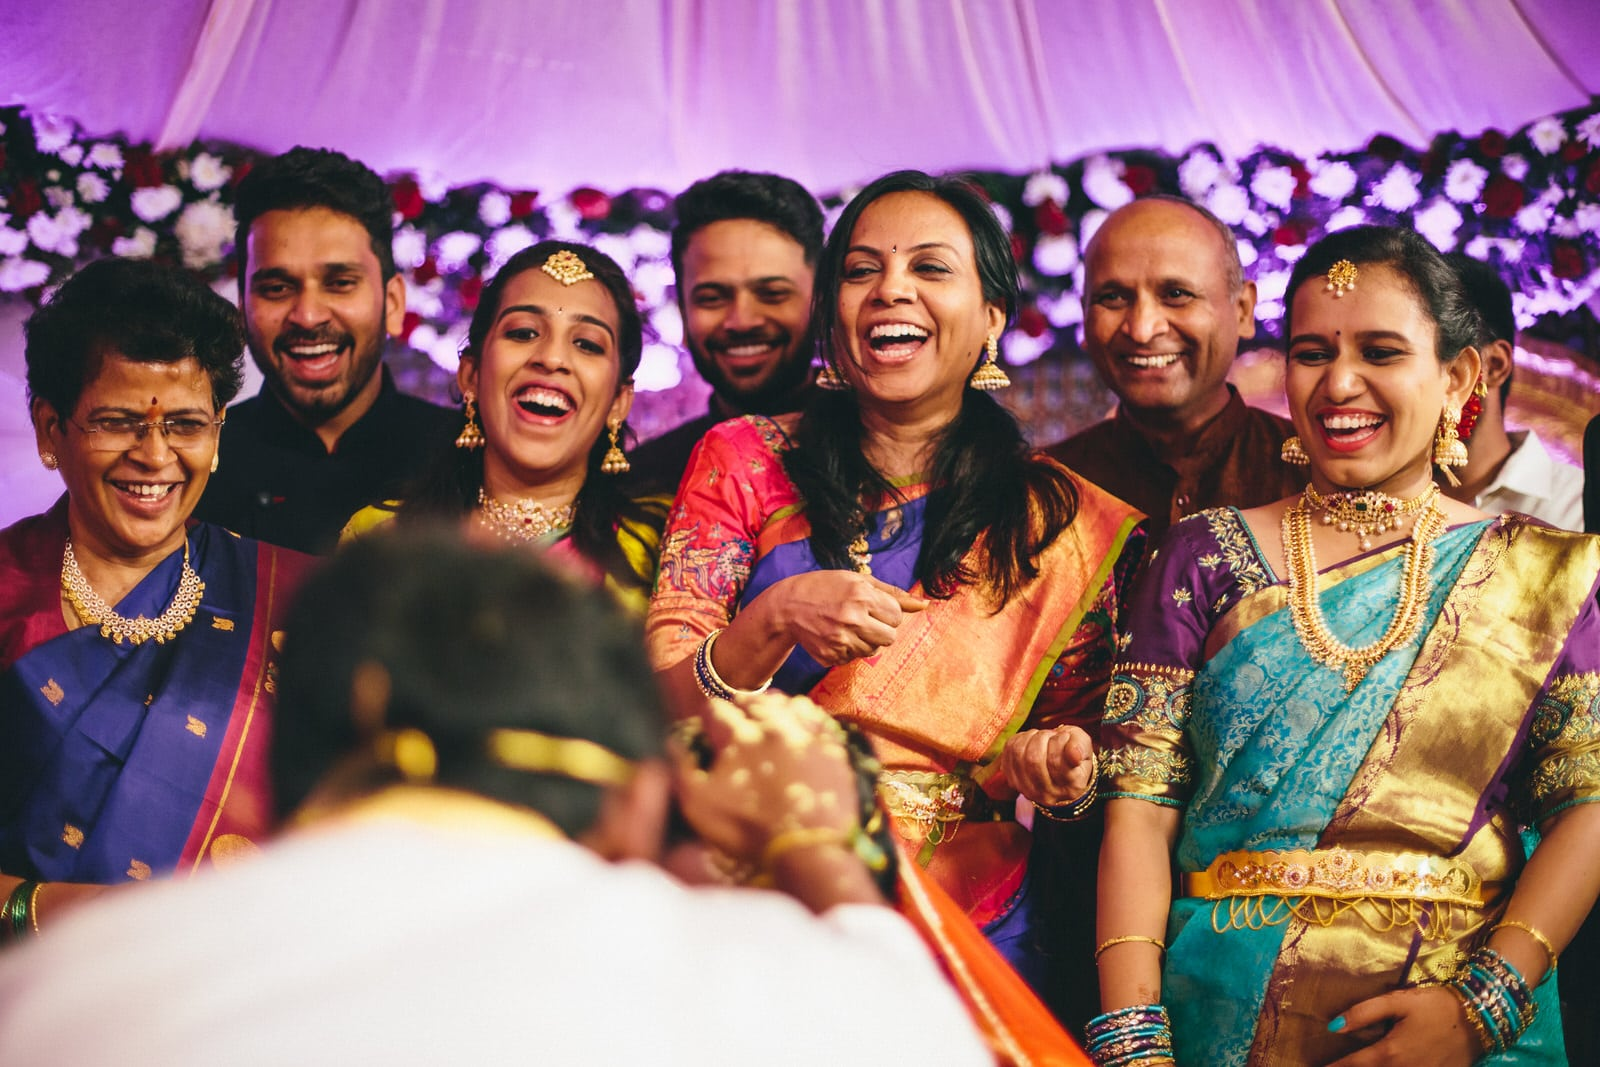 telugu family enjoying the wedding